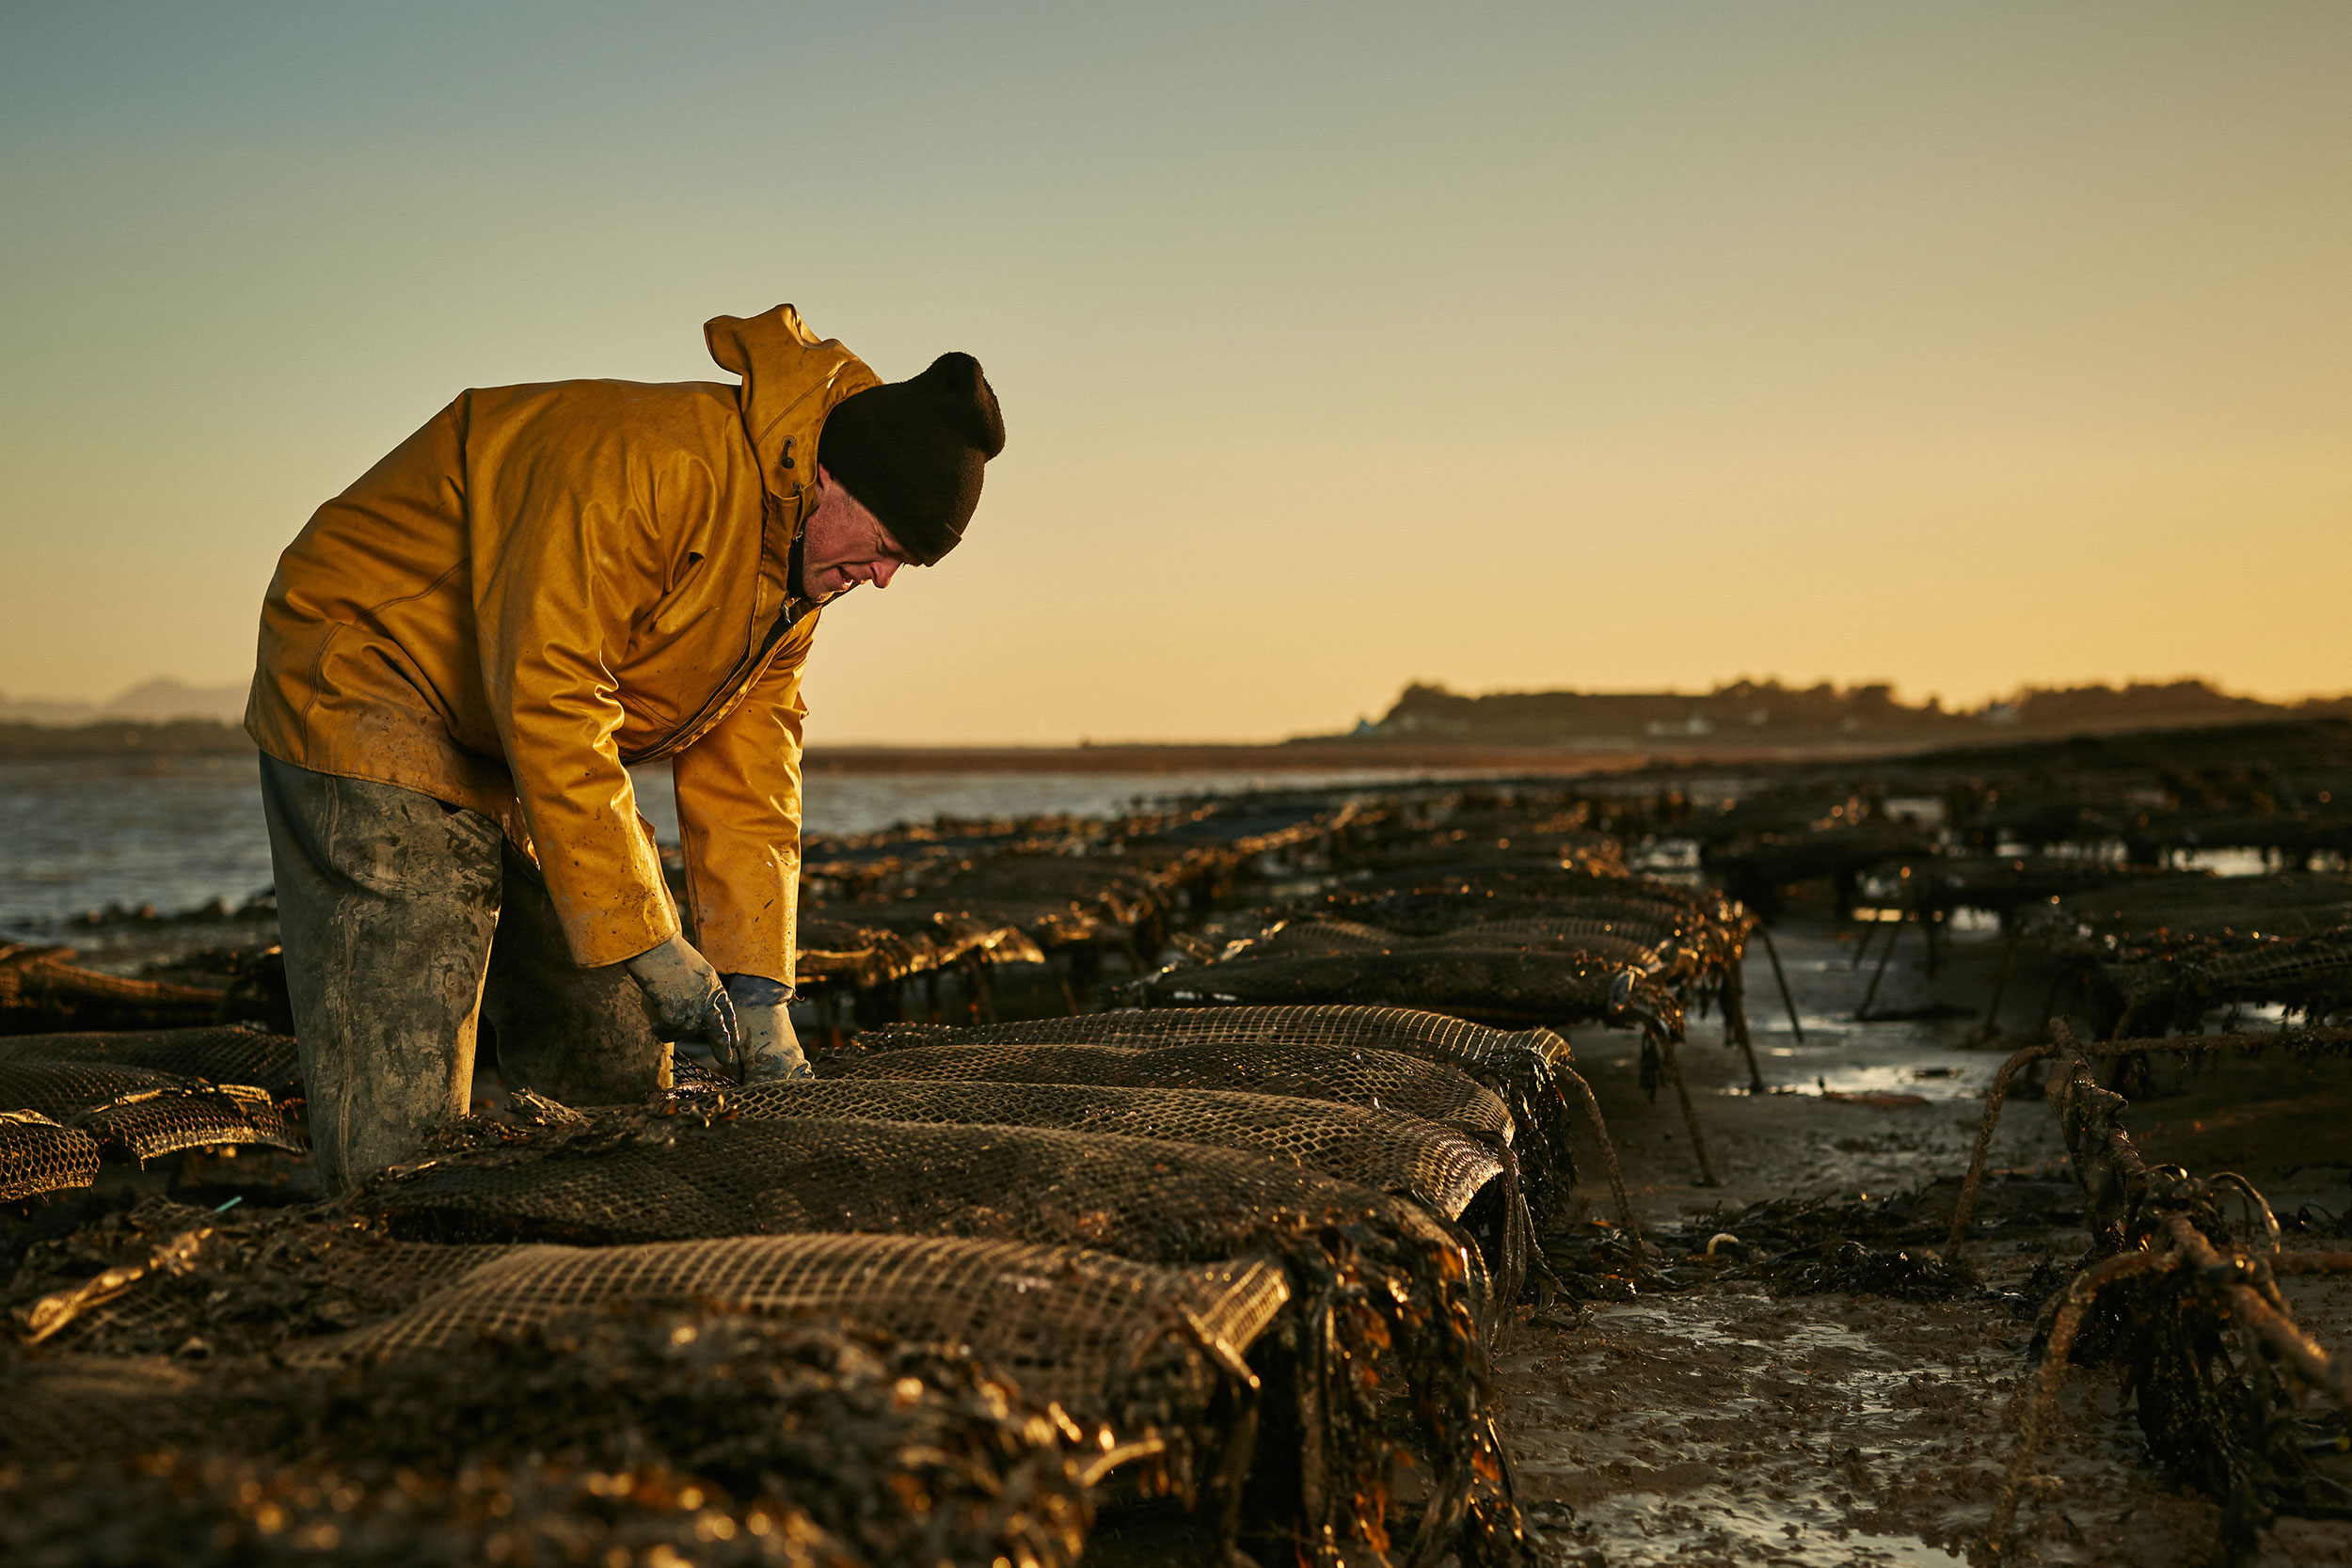 An oyster farmer, tends to his oyster beds by documentary photographer Duncan Elliott